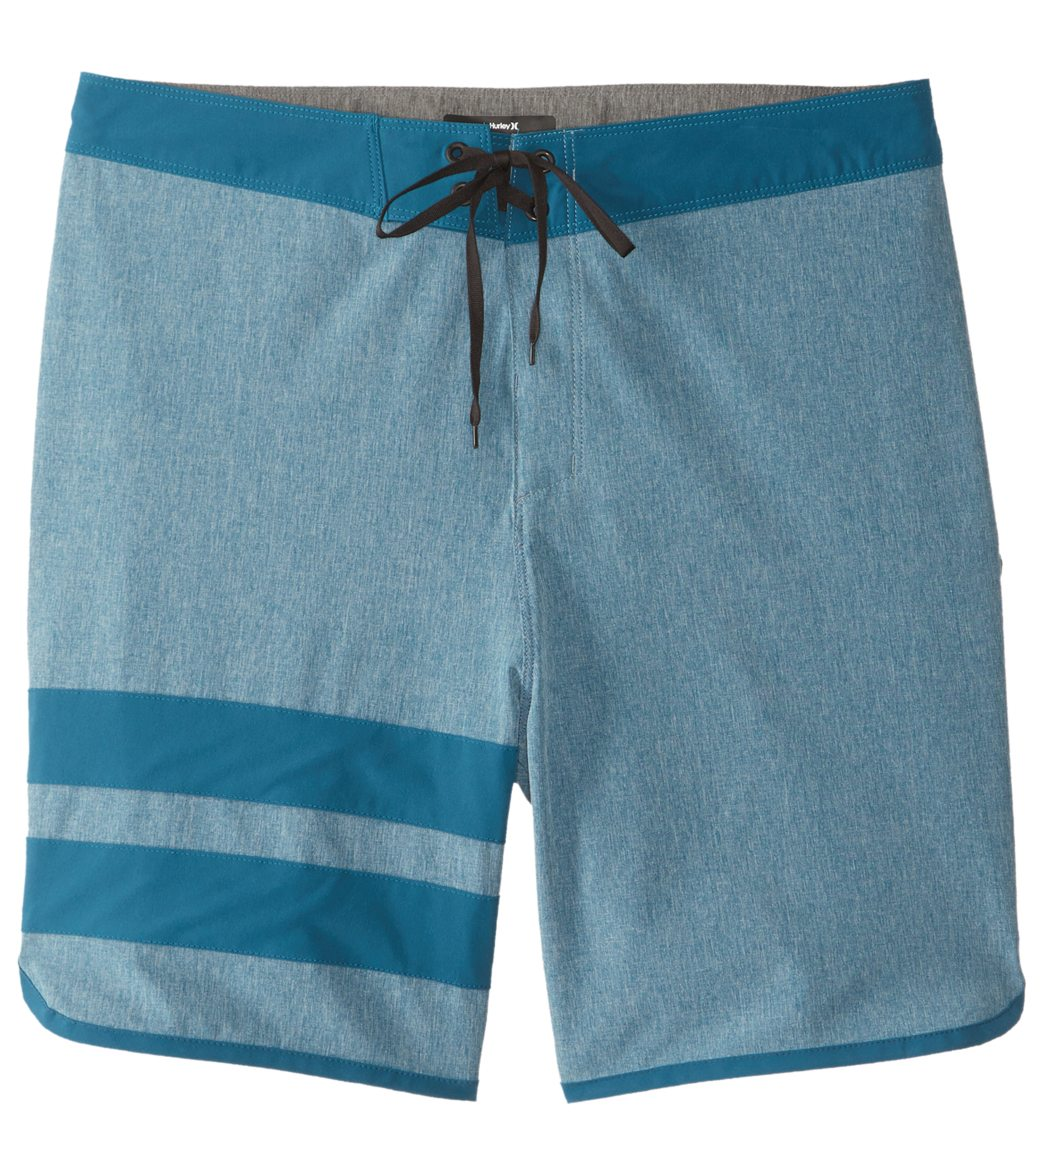 38210b8620 Hurley Men's Phantom Block Party Heather 2.0 Boardshort at ...